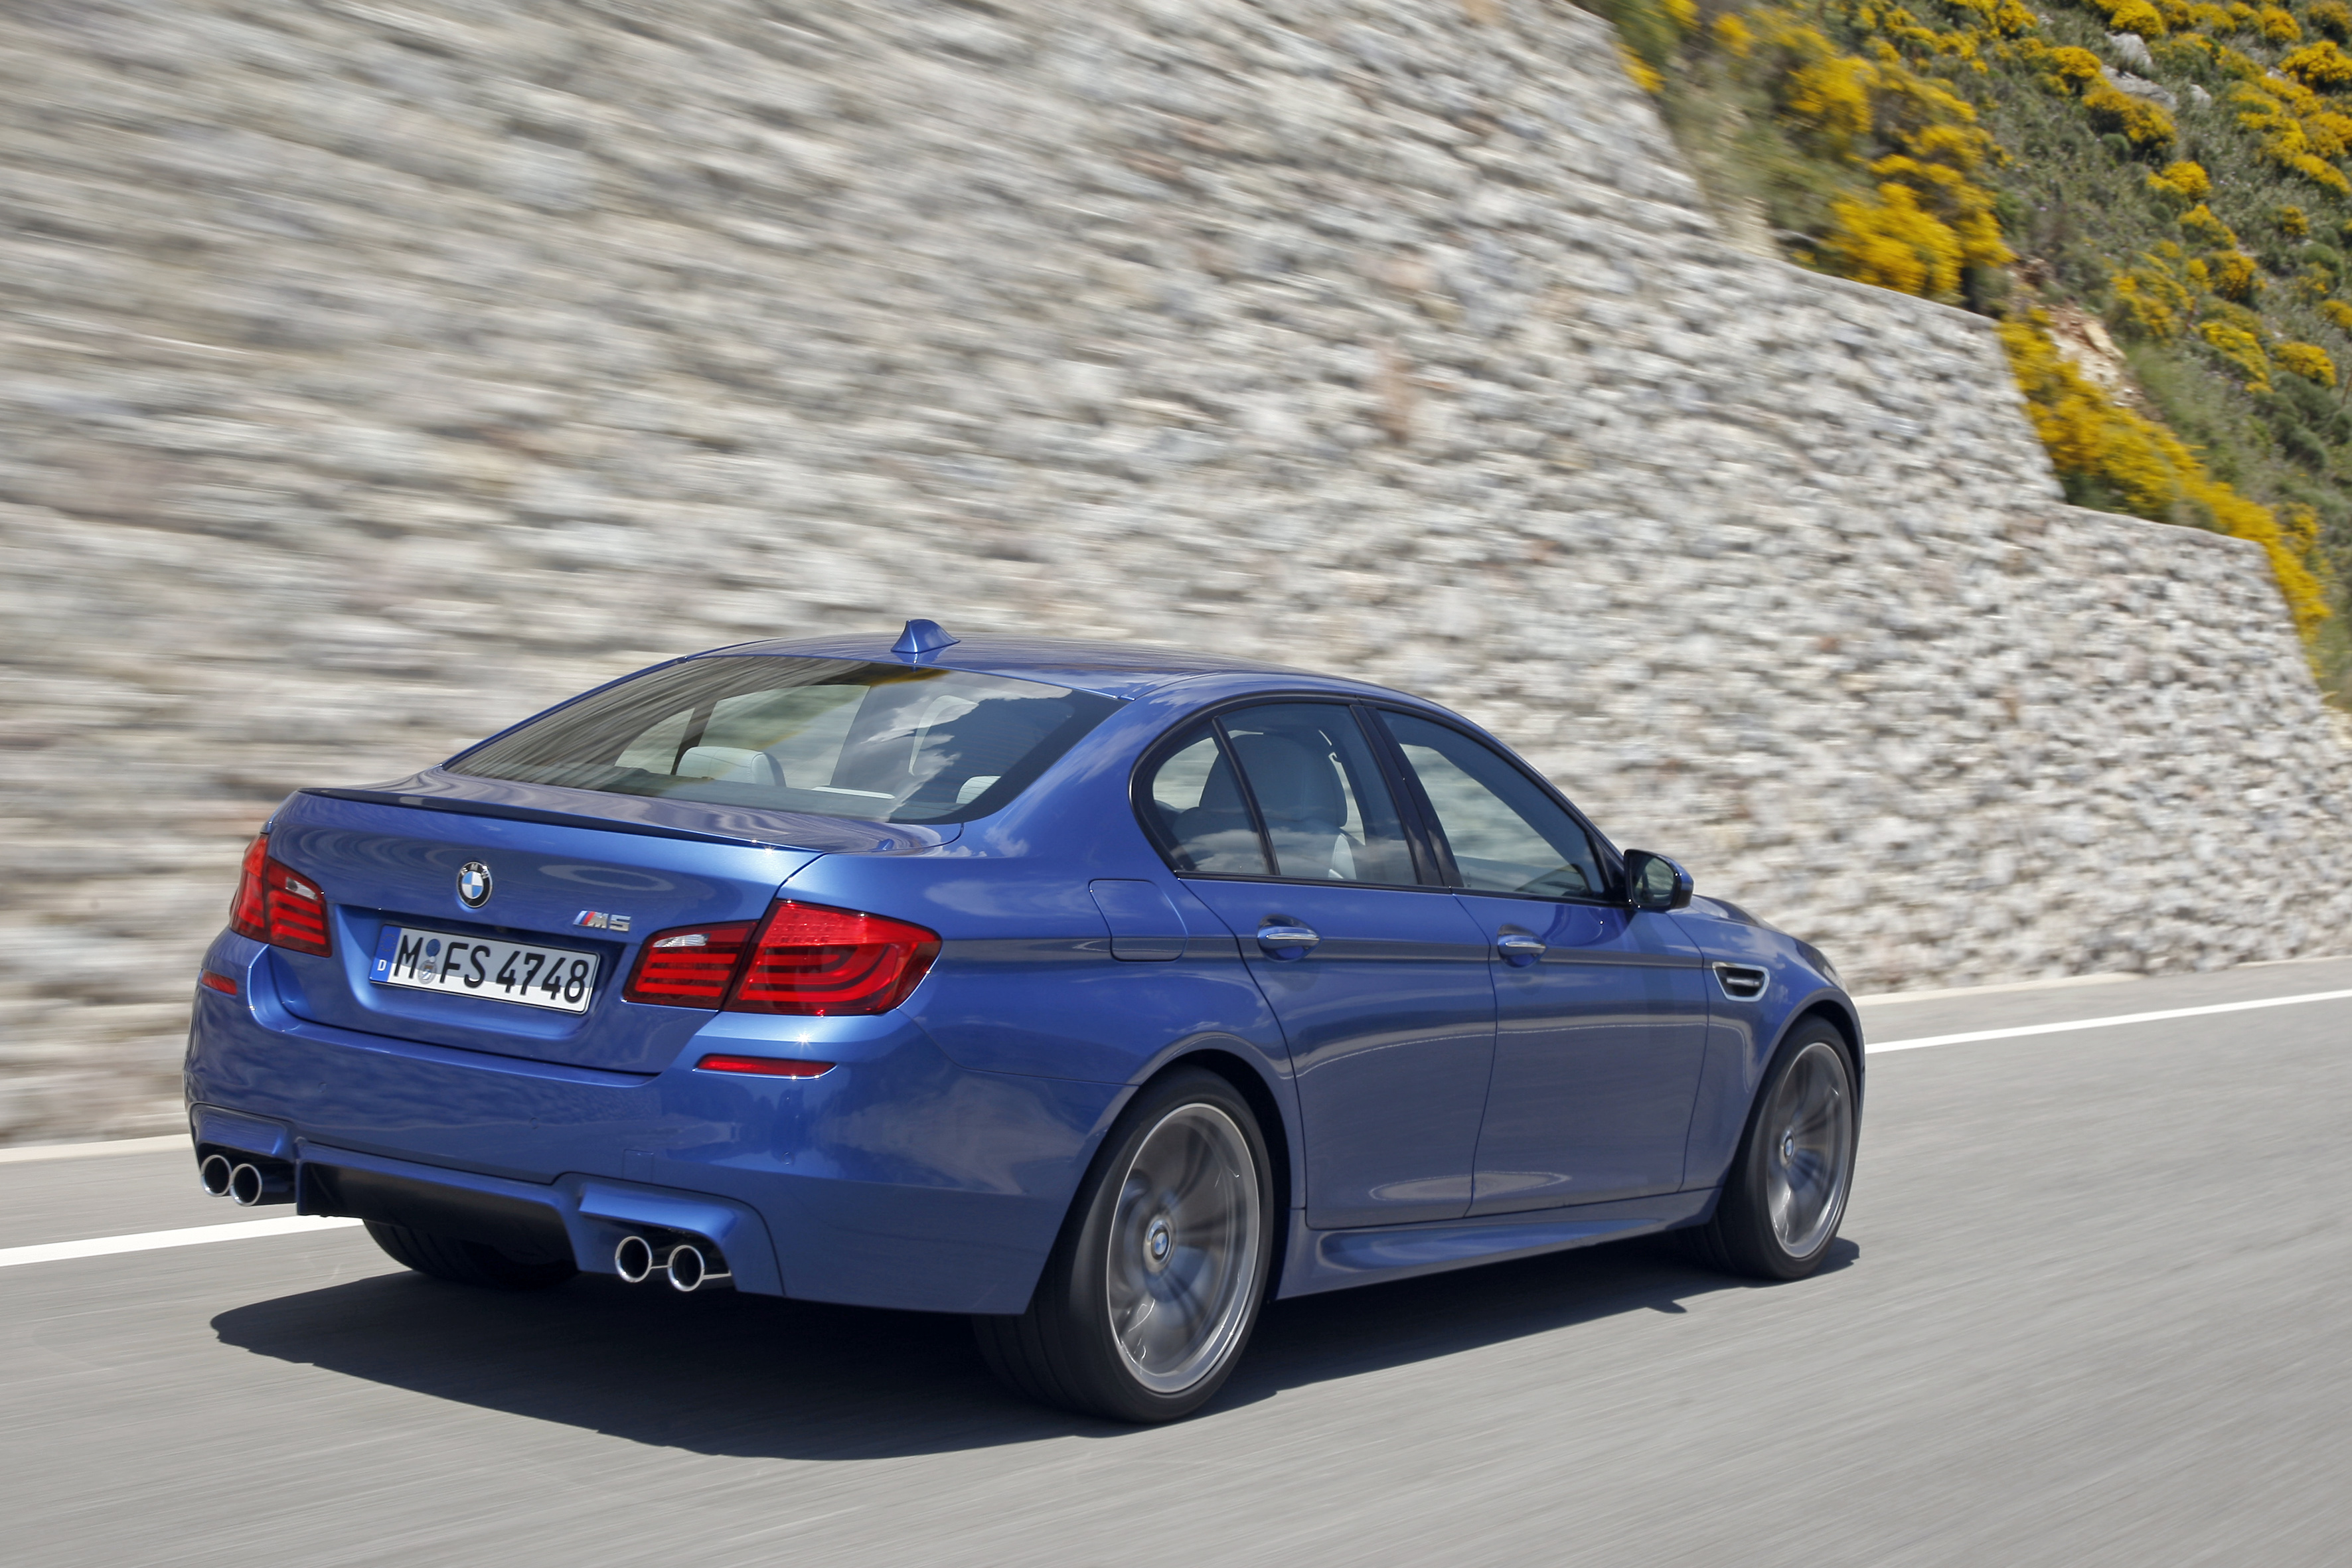 OFFICIAL BMW M5 Production pics high resolution!-p90078344.jpg